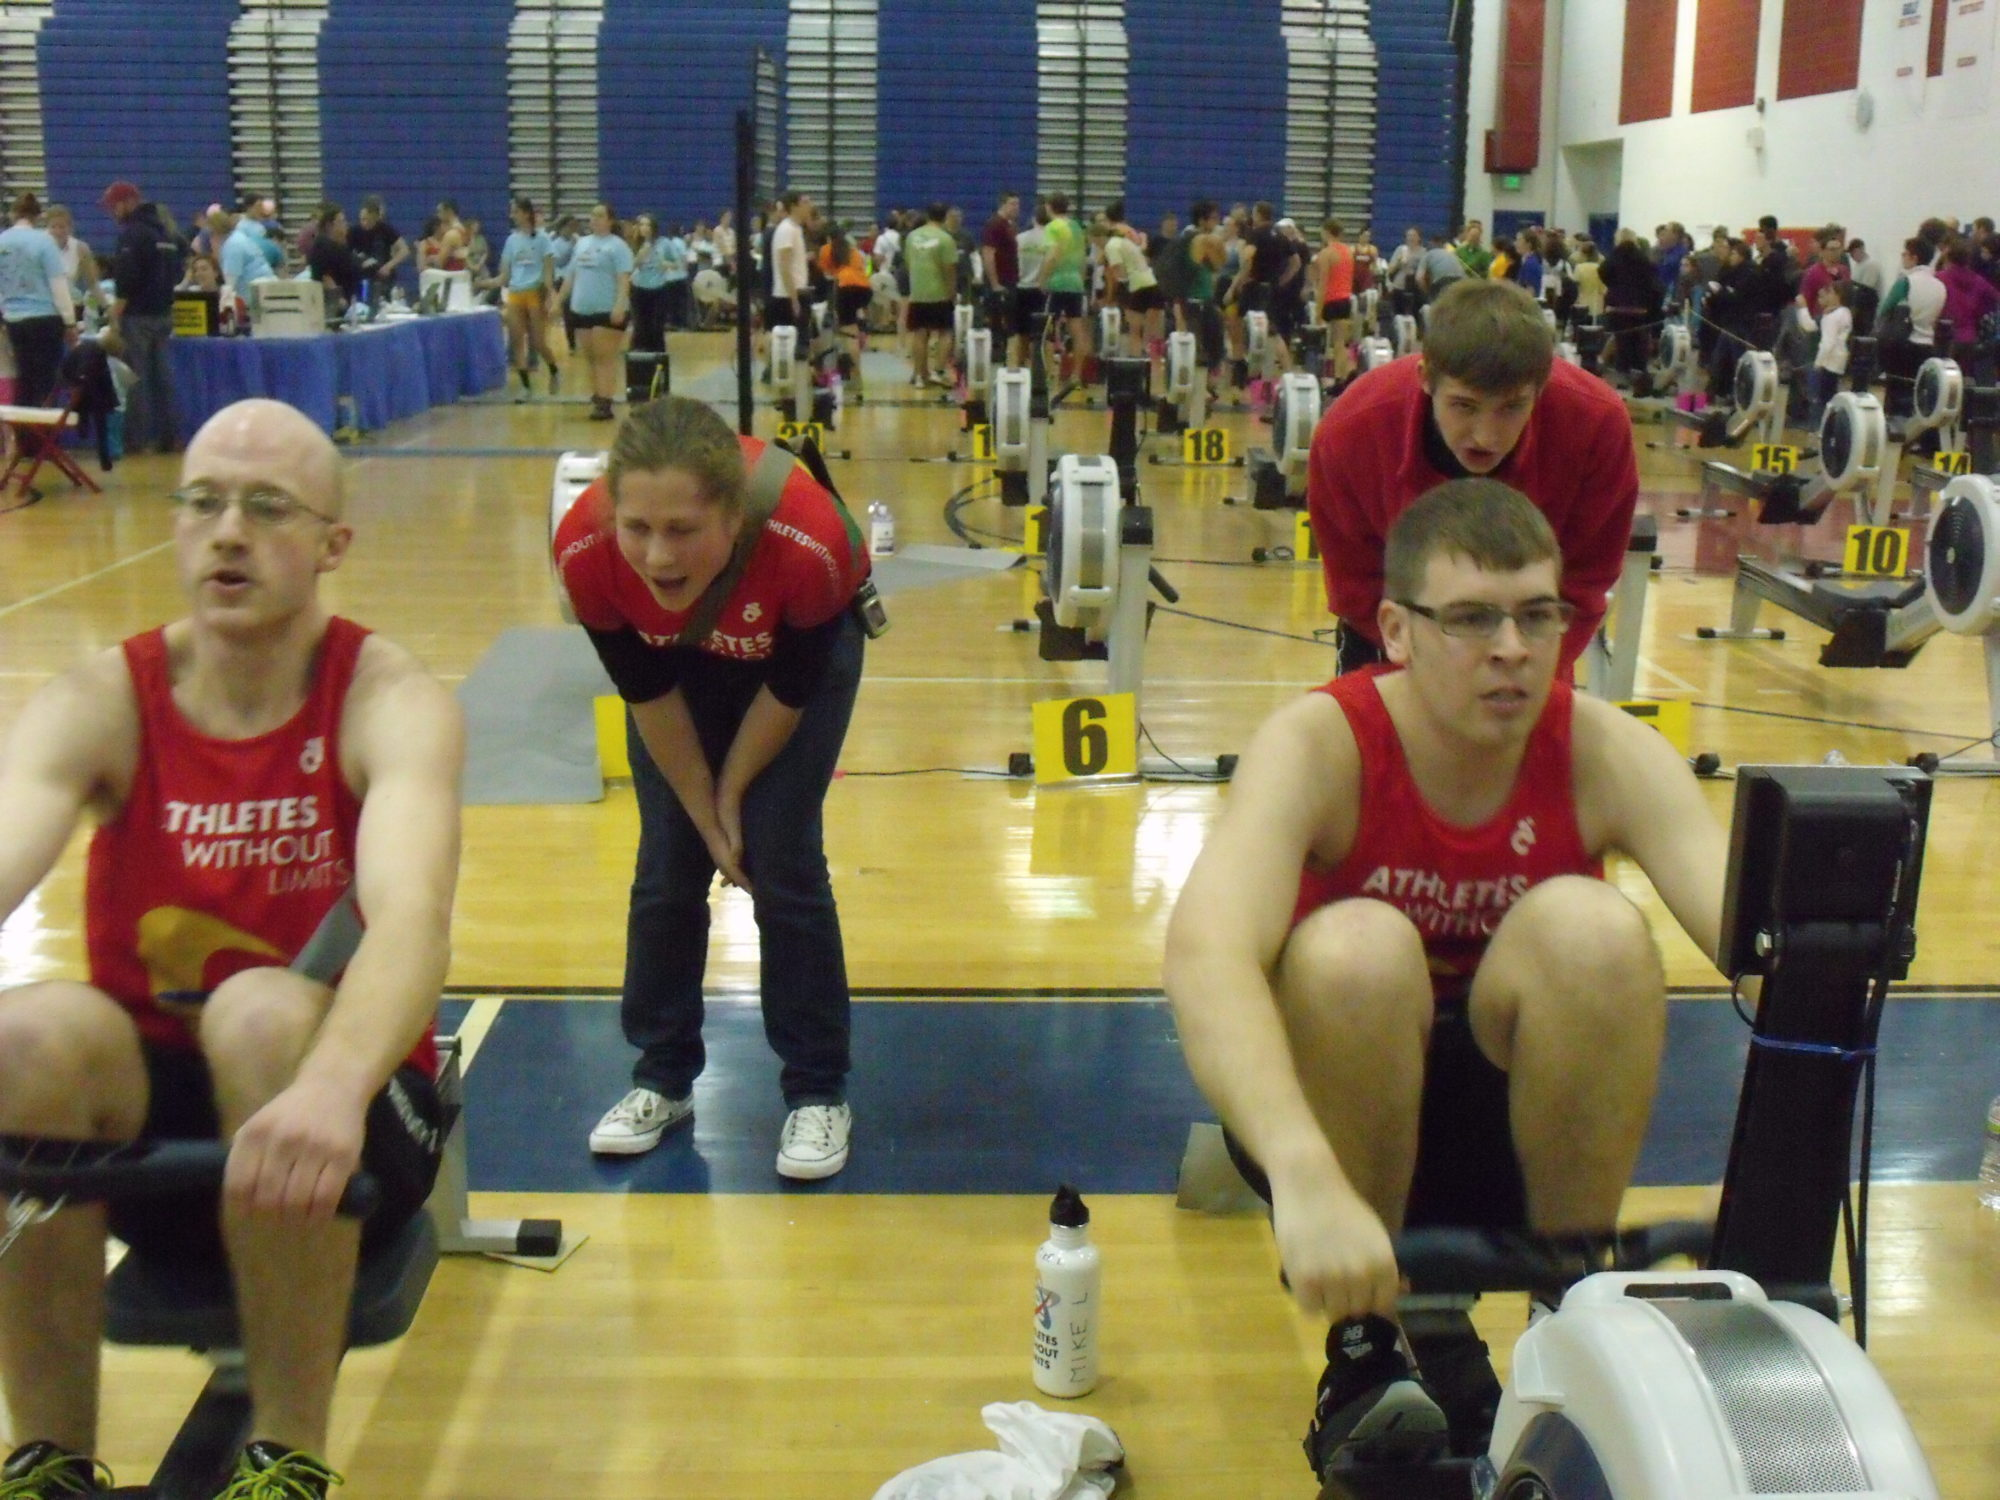 Join AWL at Erg Sprints-World Indoor Rowing